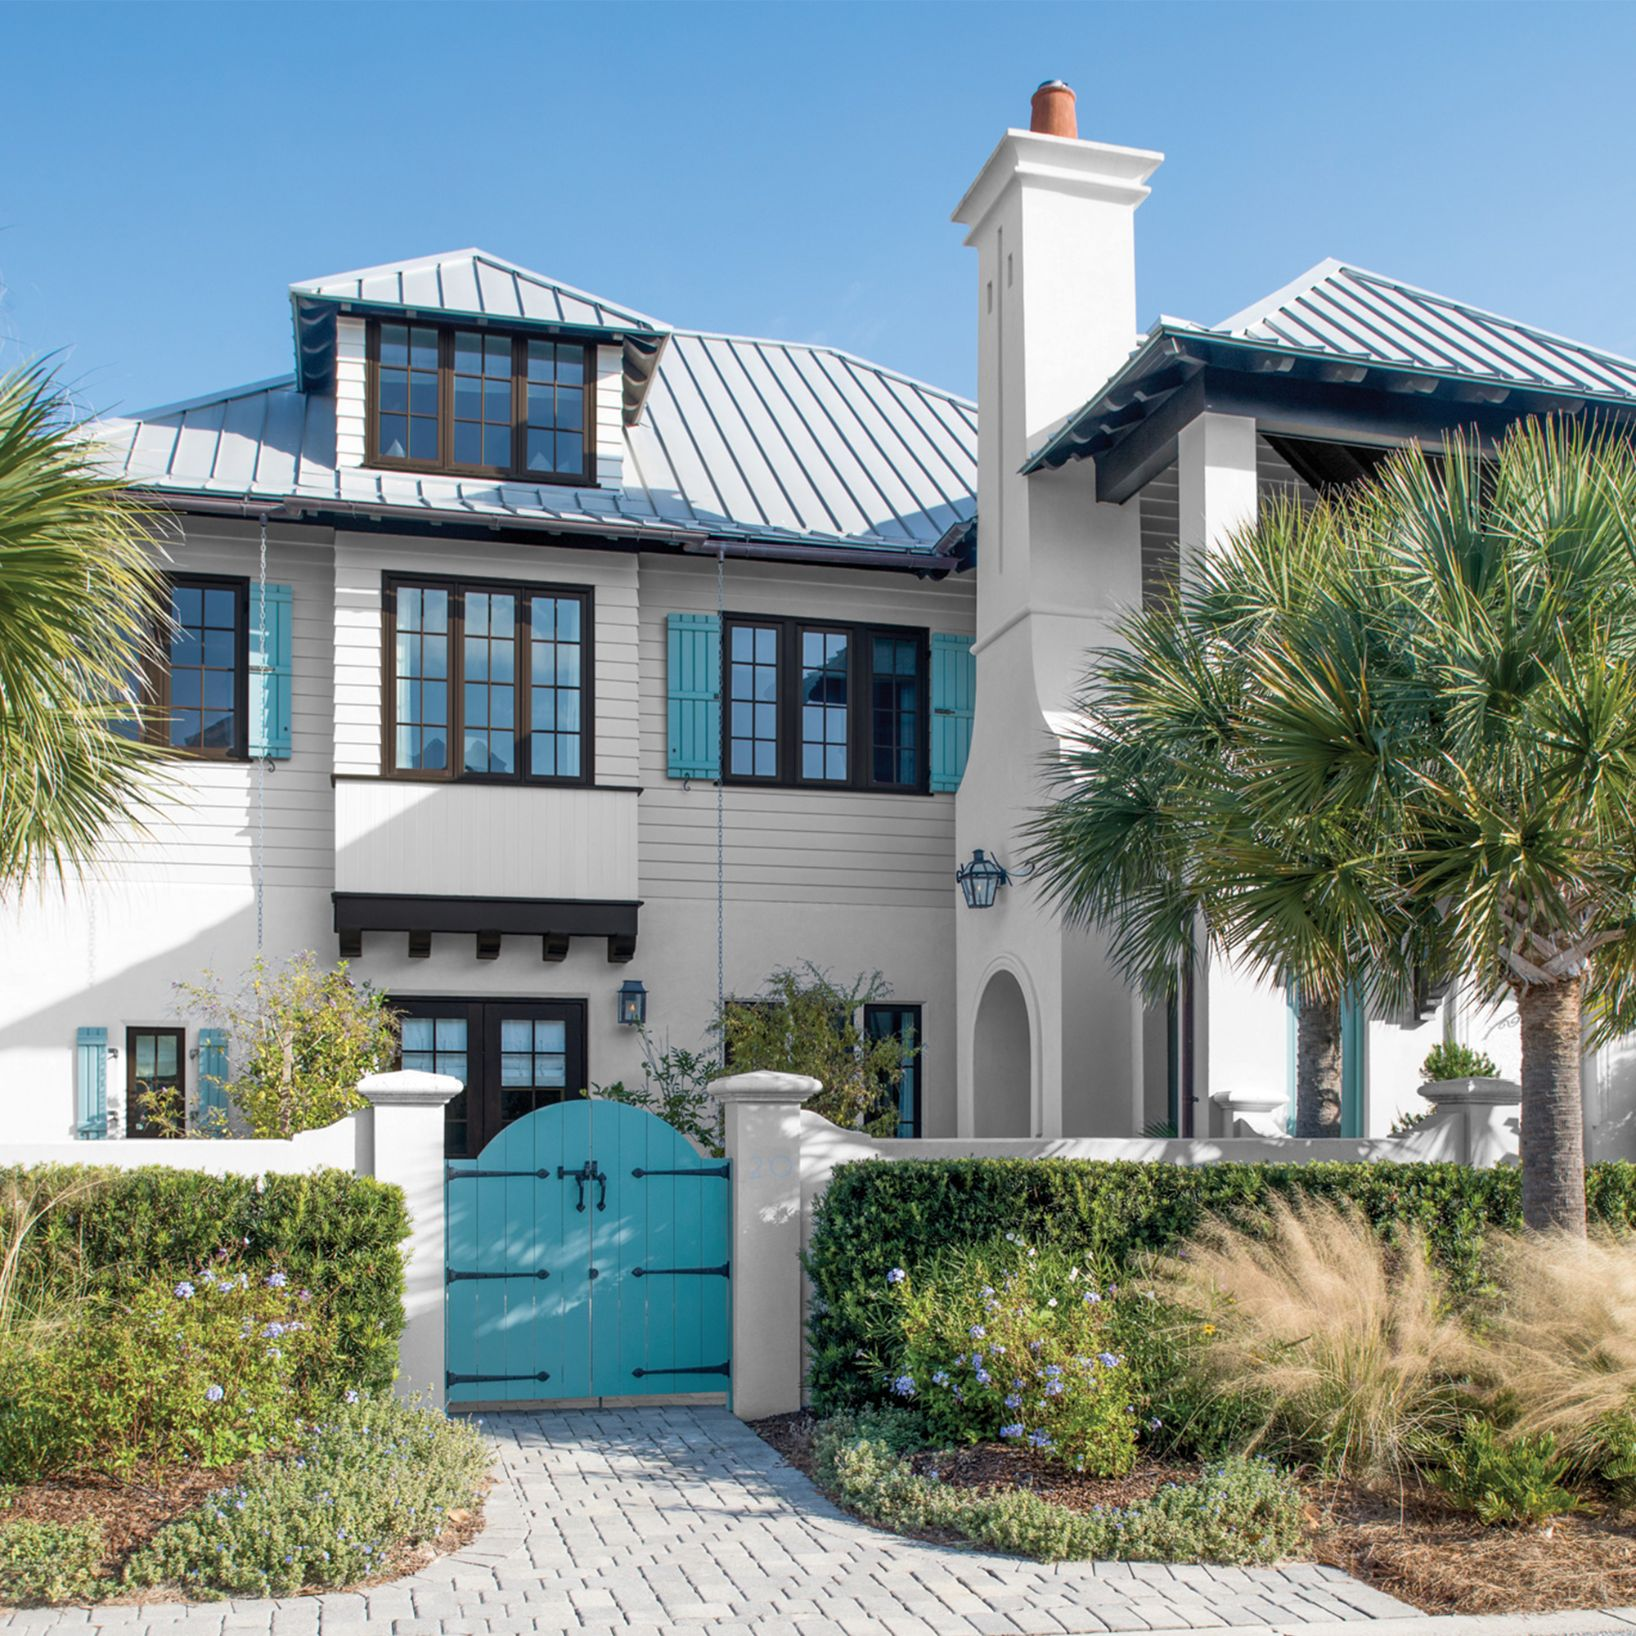 Brown Trimmed House with Turquoise Shutters